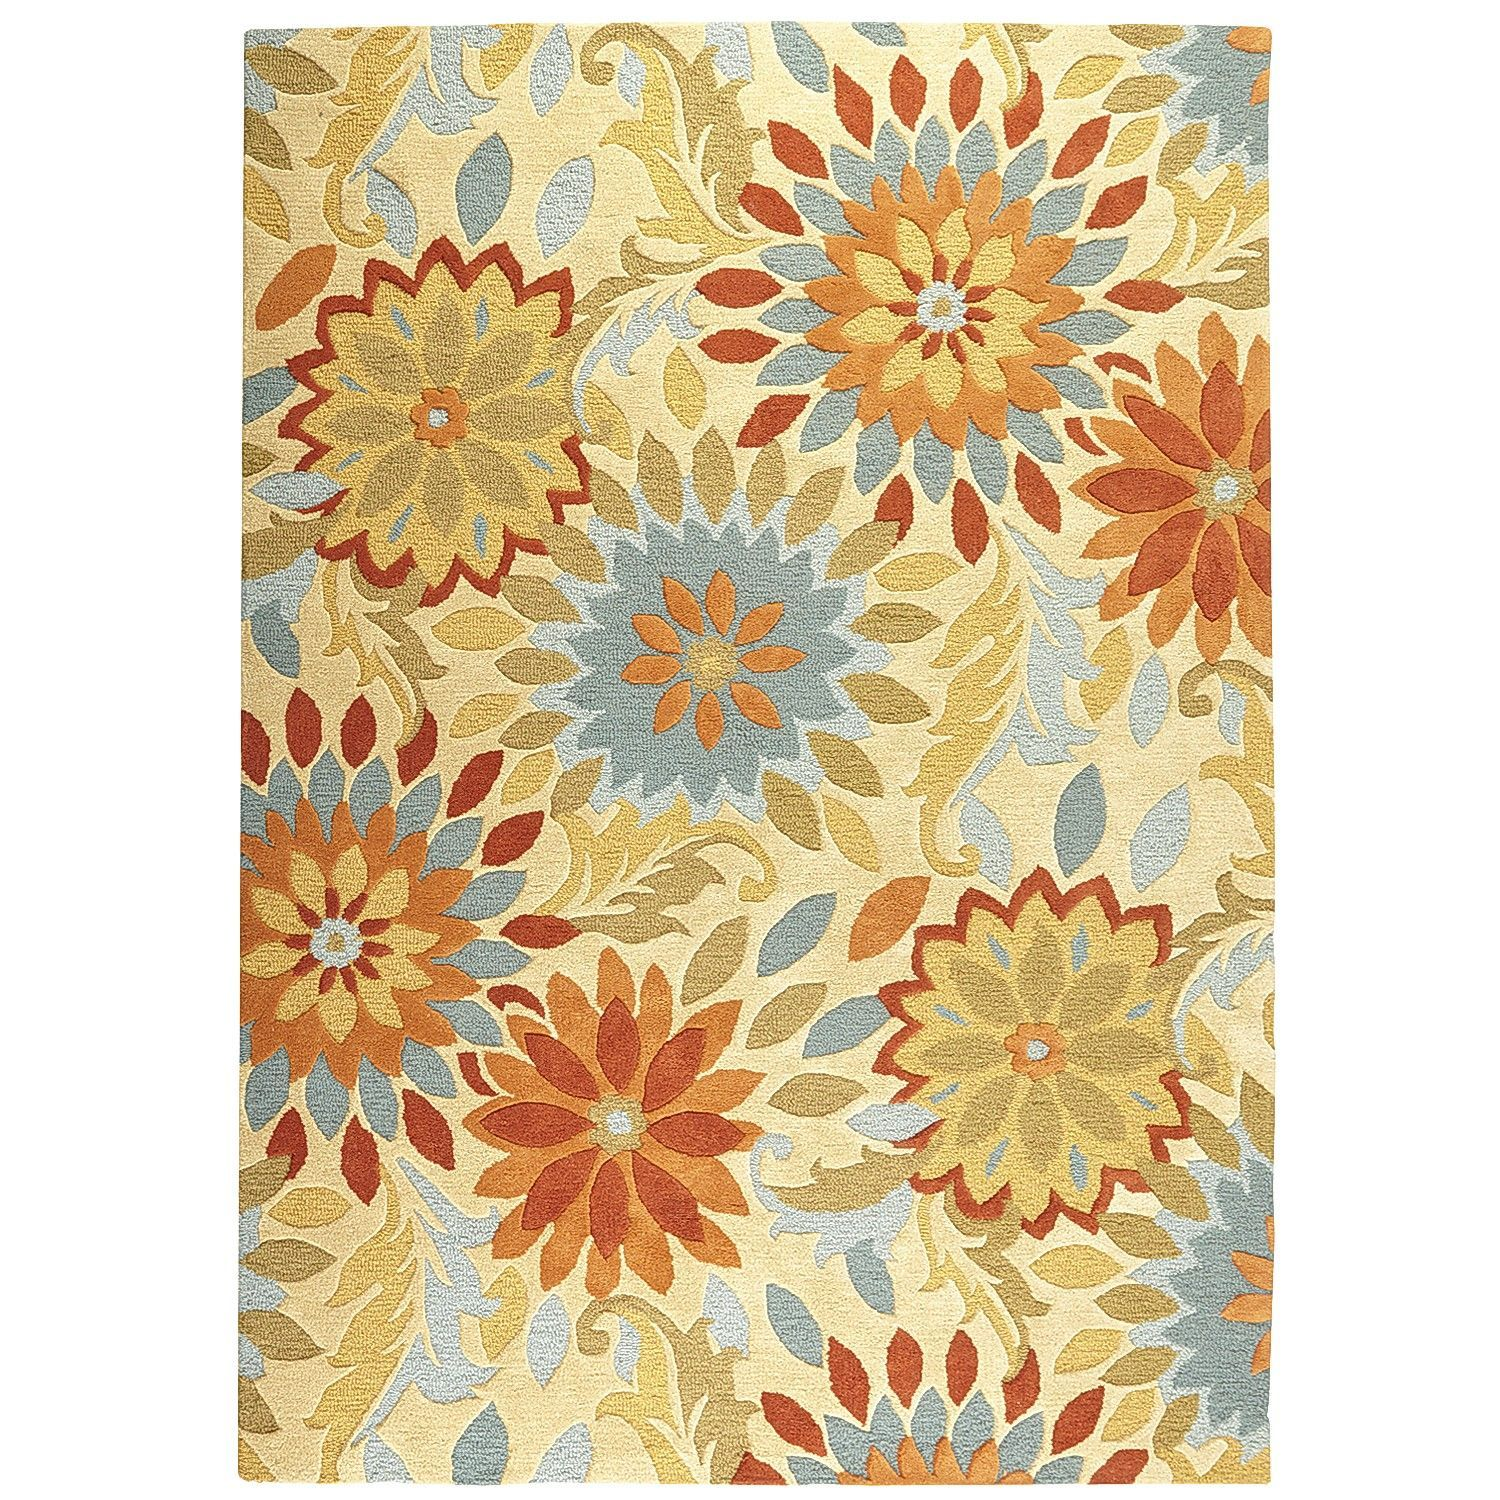 Exceptional Dazzle Floral Rugs   Persimmon | Pier 1 Imports